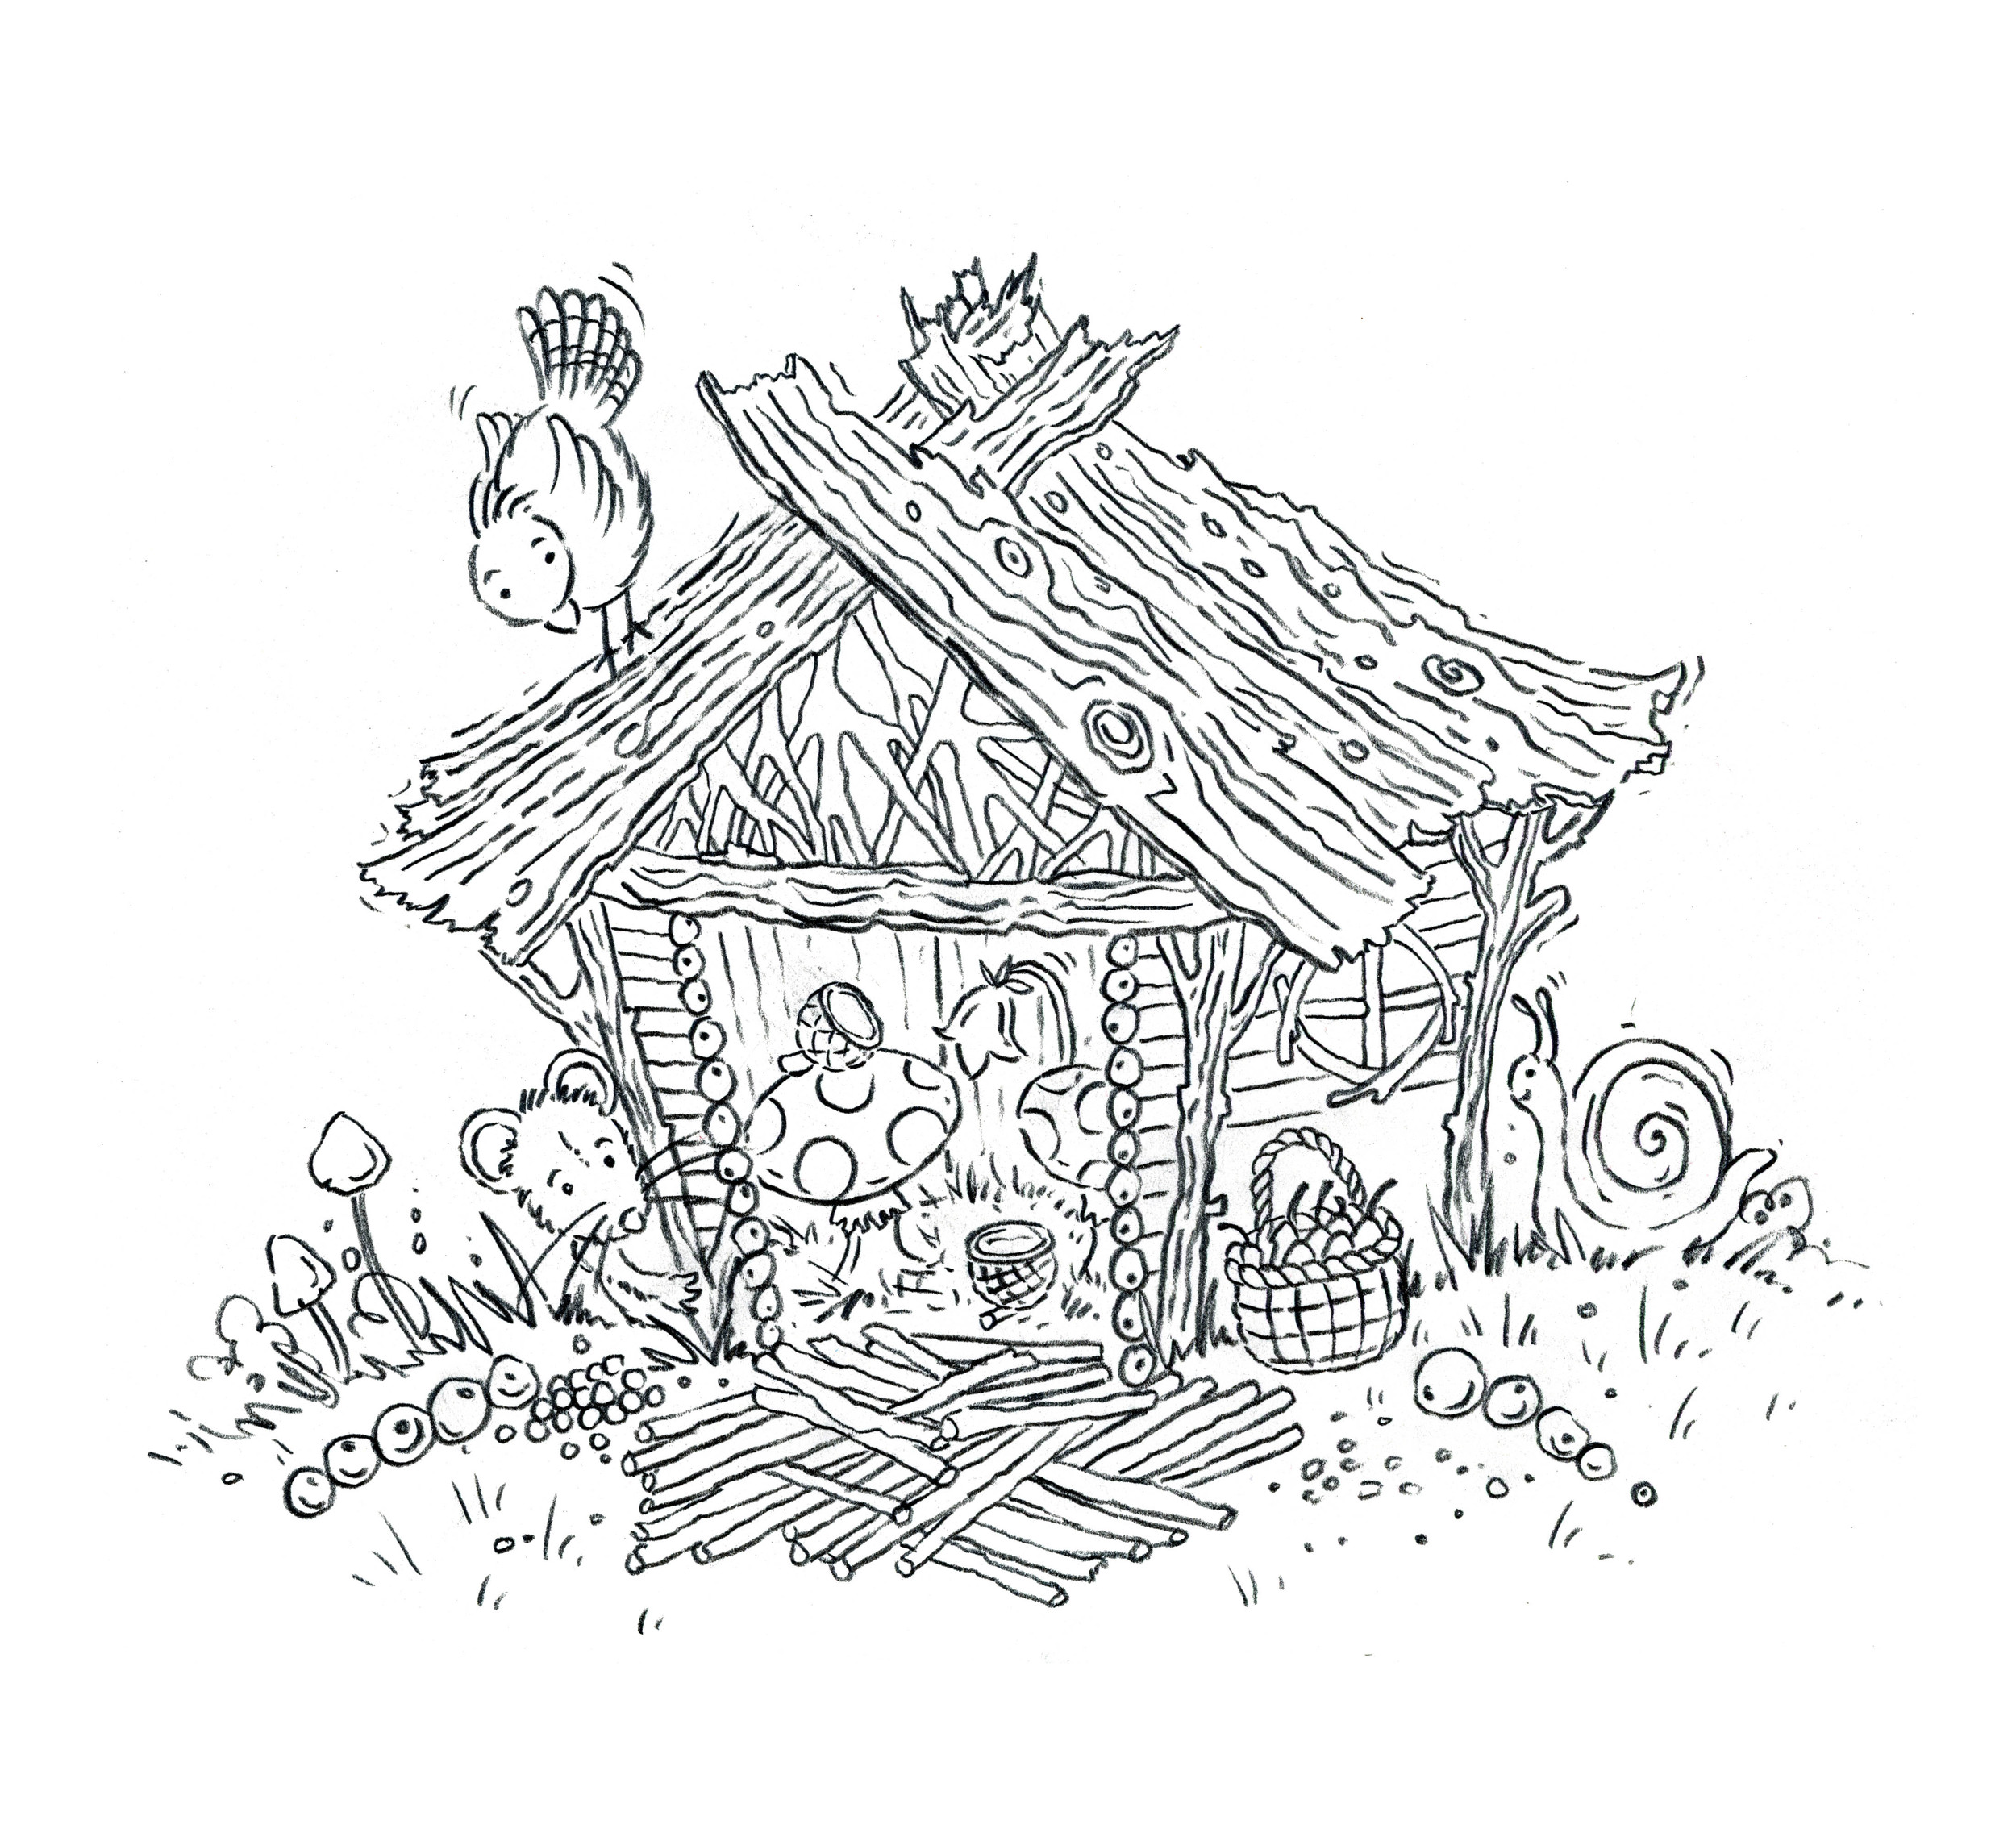 Original drawing from the book.